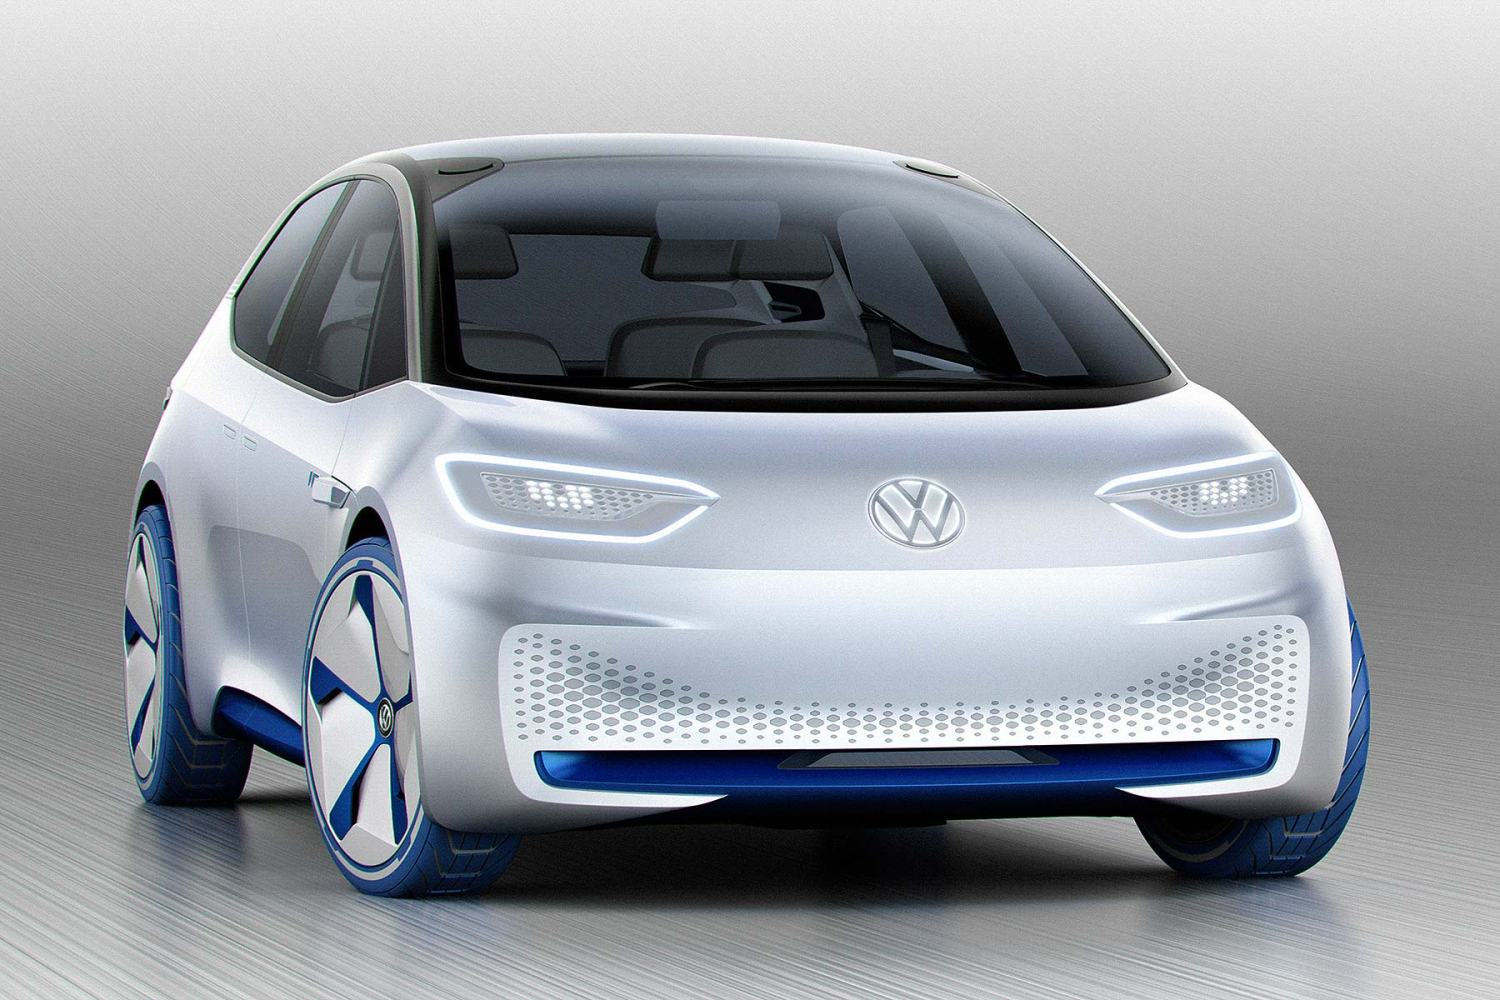 Image result for electric concept car